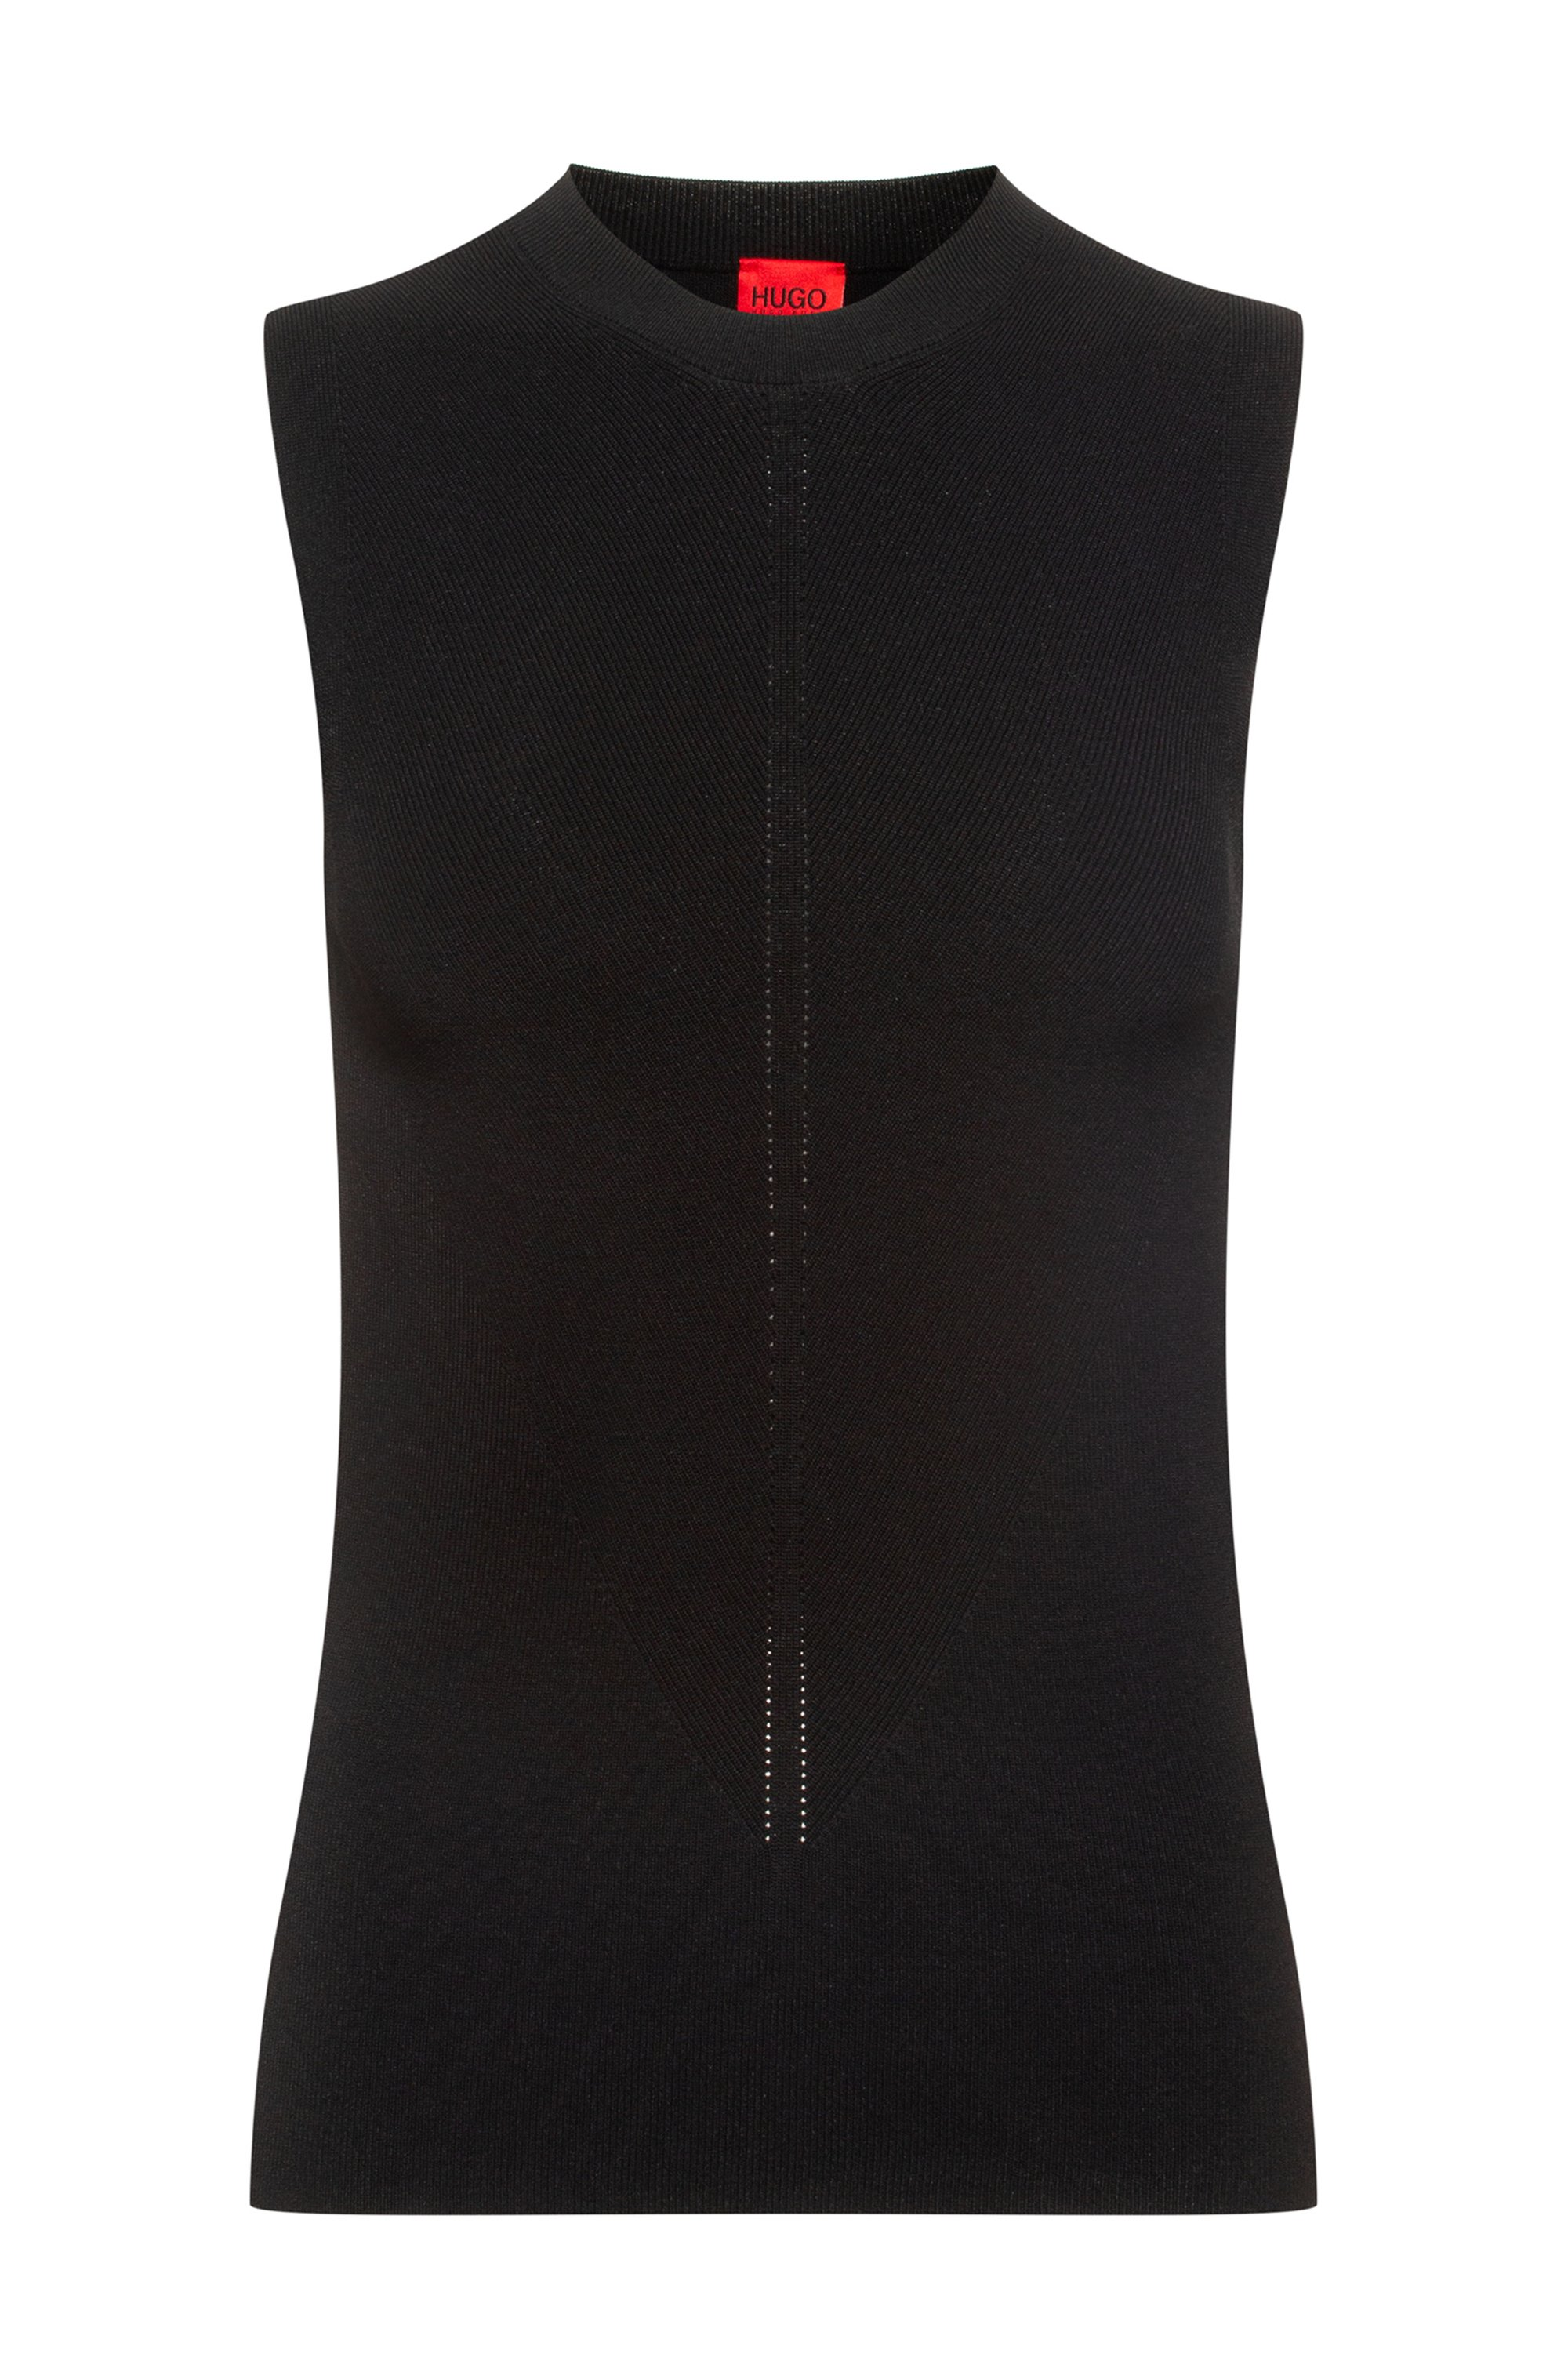 Slim-fit sleeveless top in knitted stretch fabric, Black